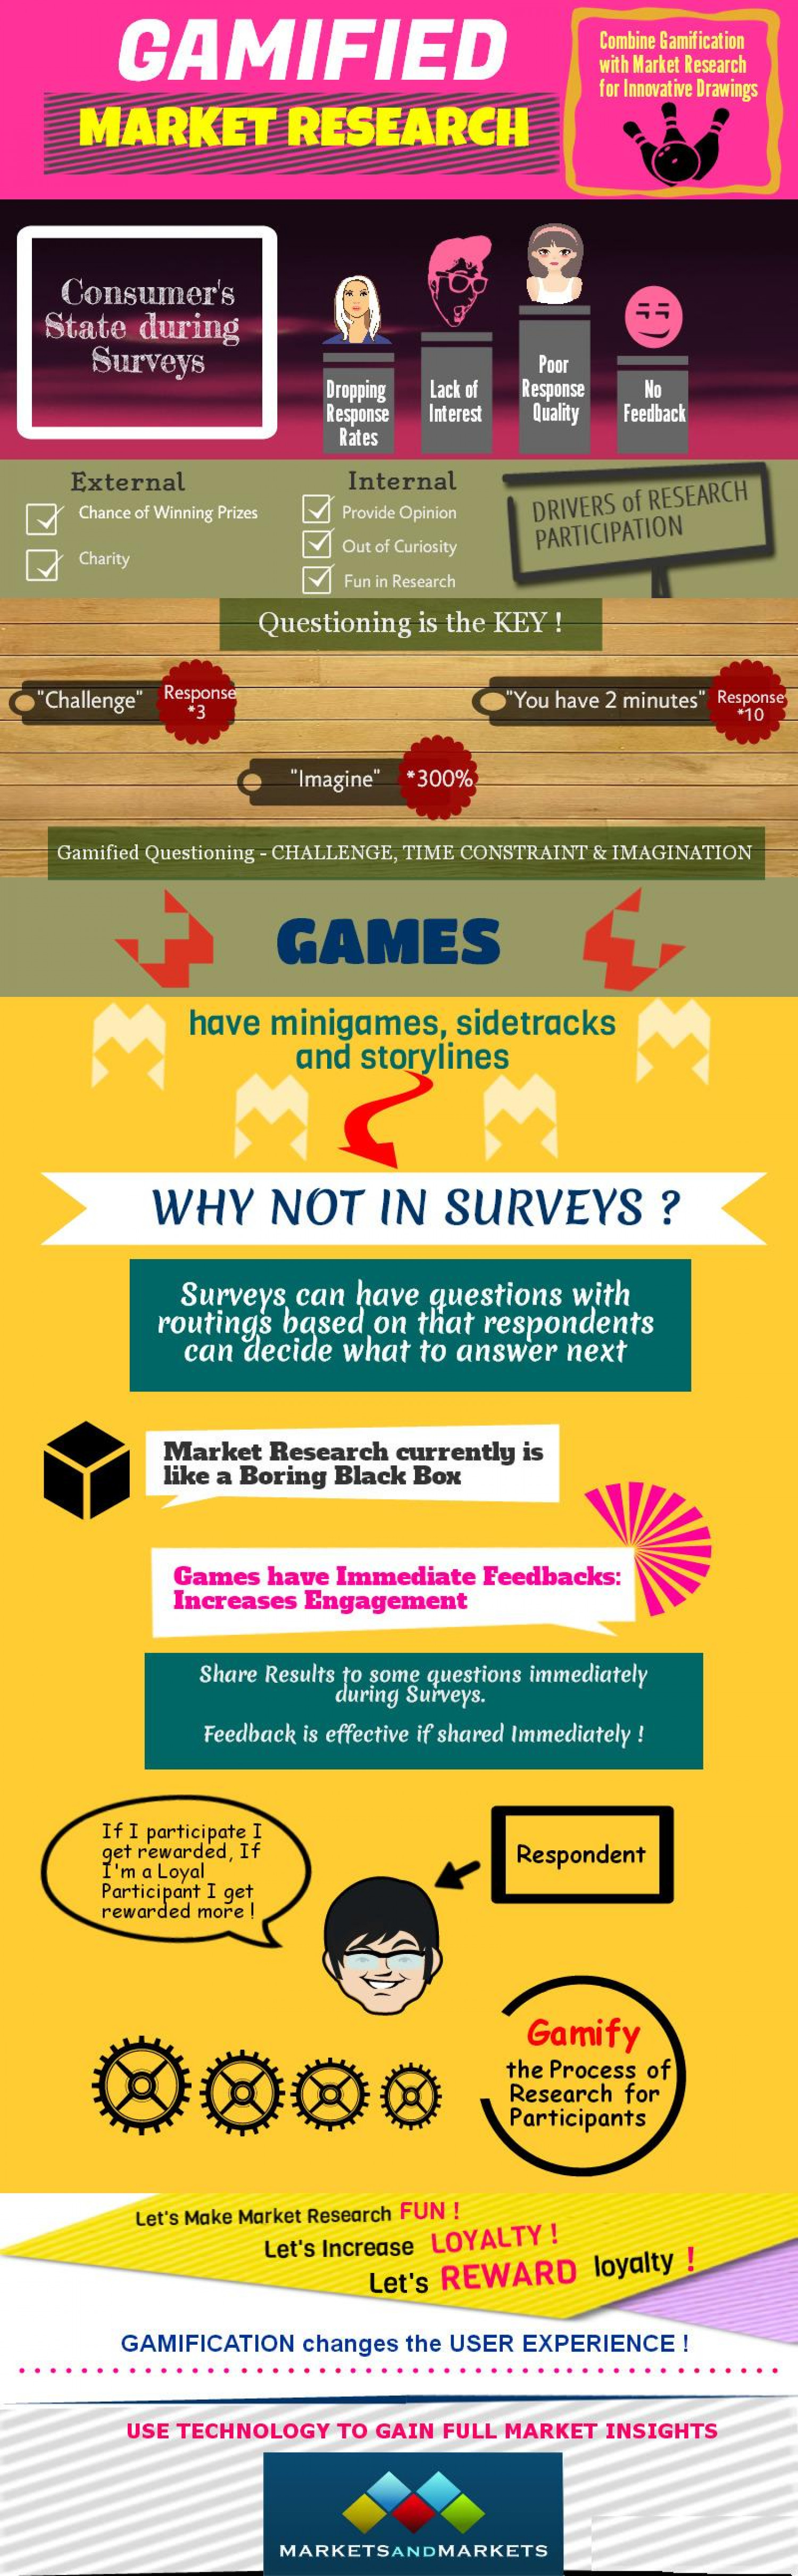 Gamification in Market Research Infographic